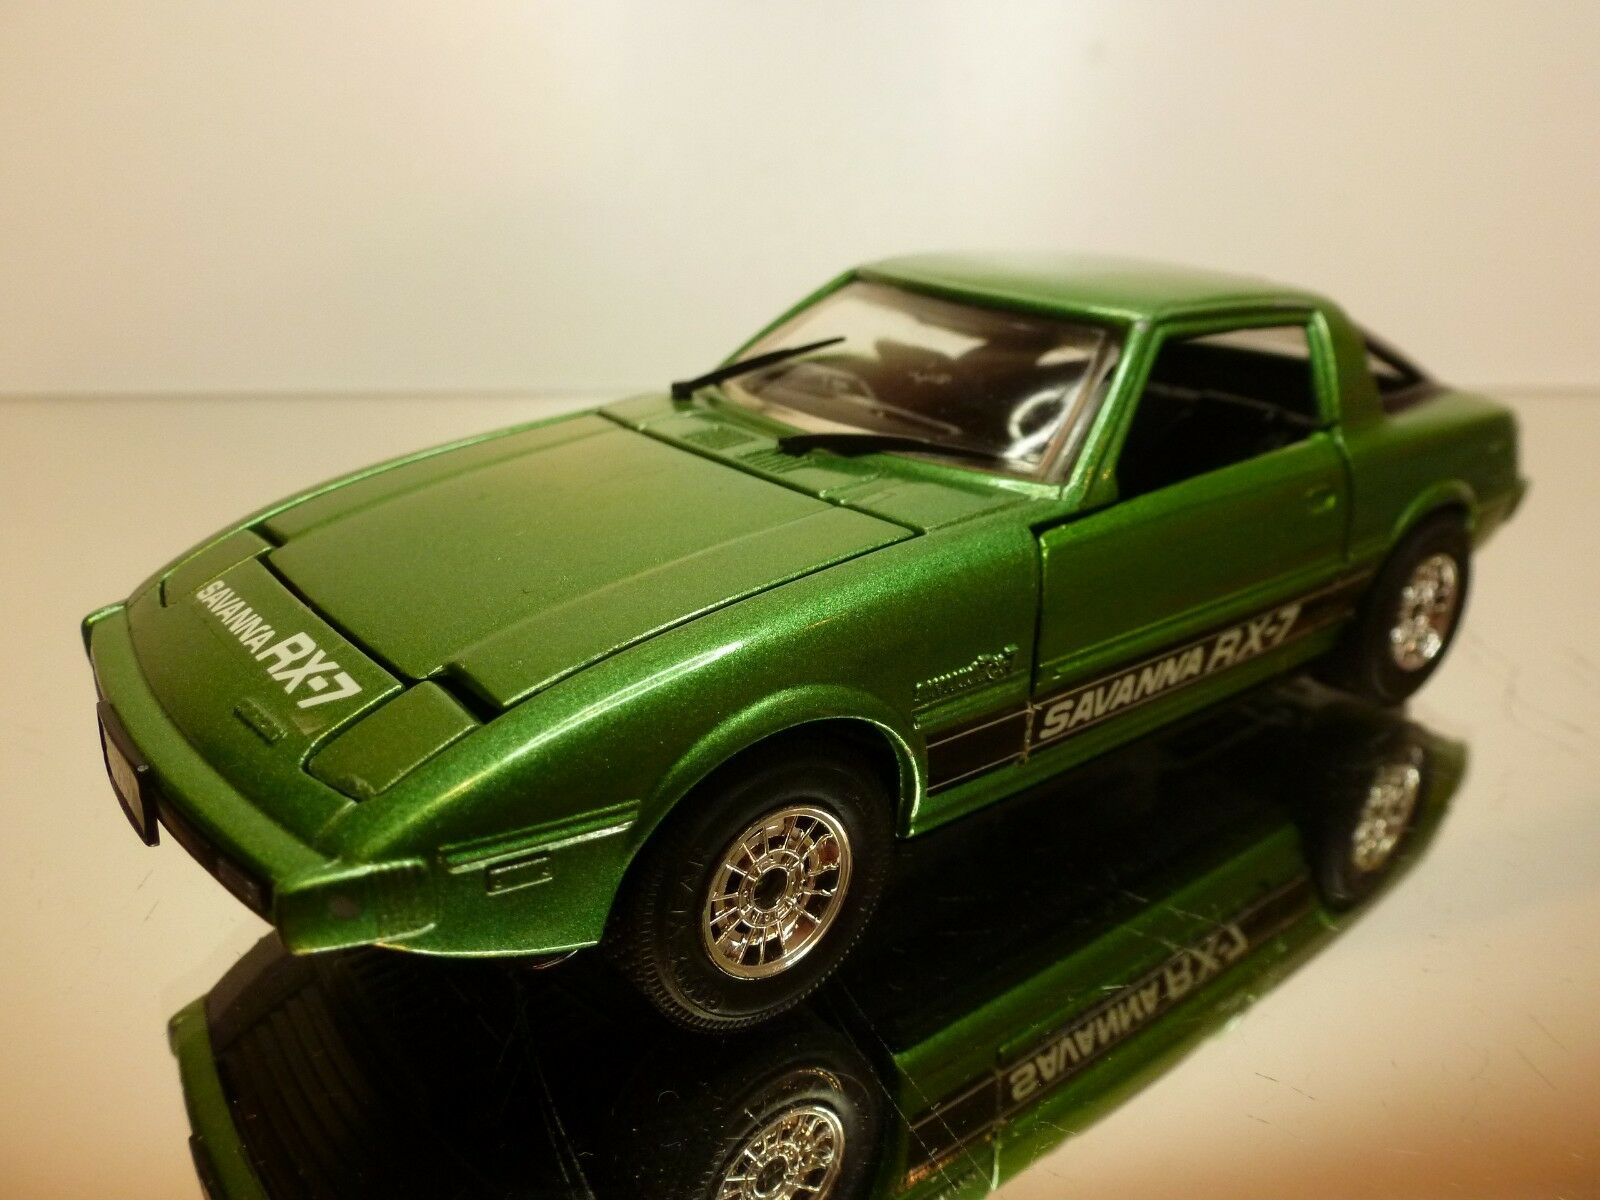 EIDAI GRIP MAZDA SAVANNA RX7 RX-7 - RHD - vert METALLIC 1 28 RARE - VERY GOOD